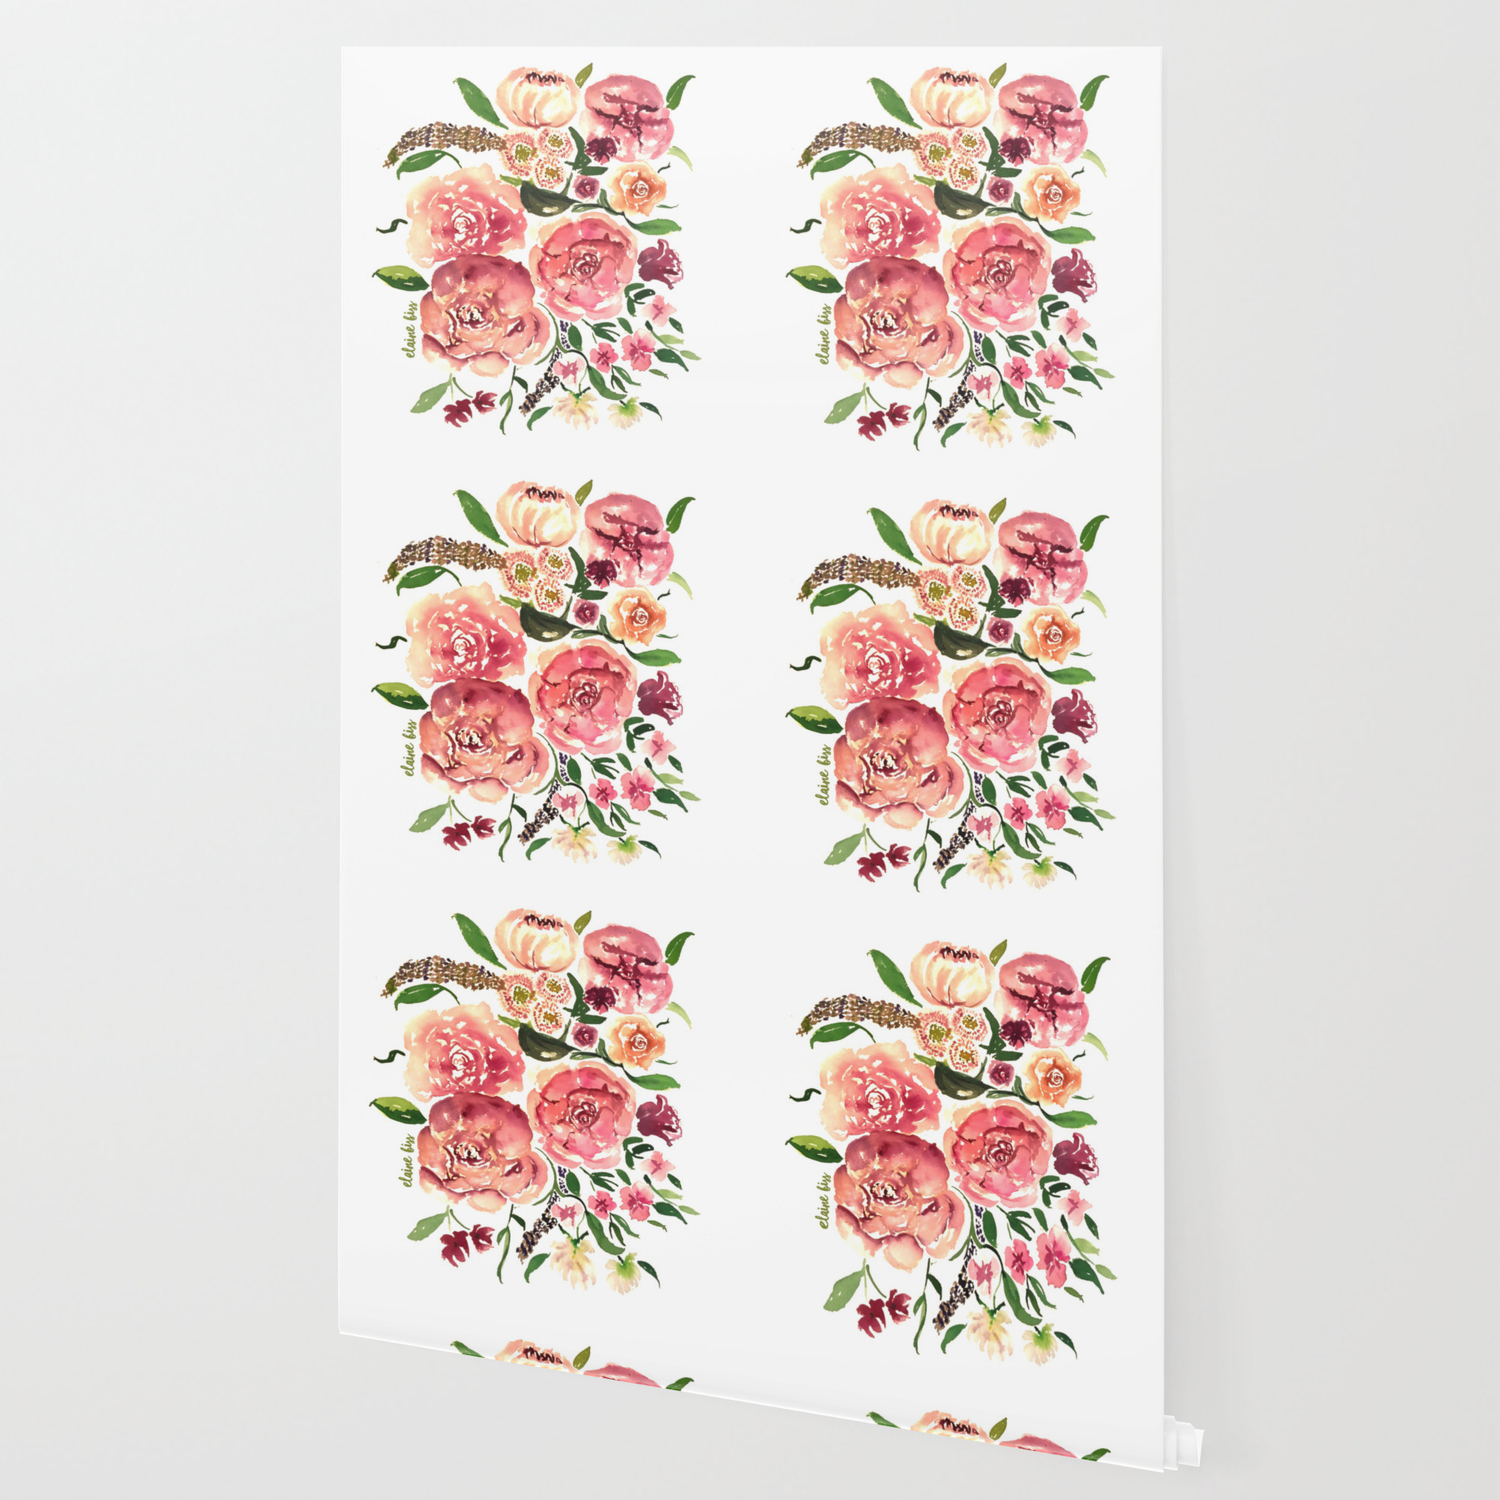 Peony Bouquet Floral Watercolor Illustration Wallpaper By